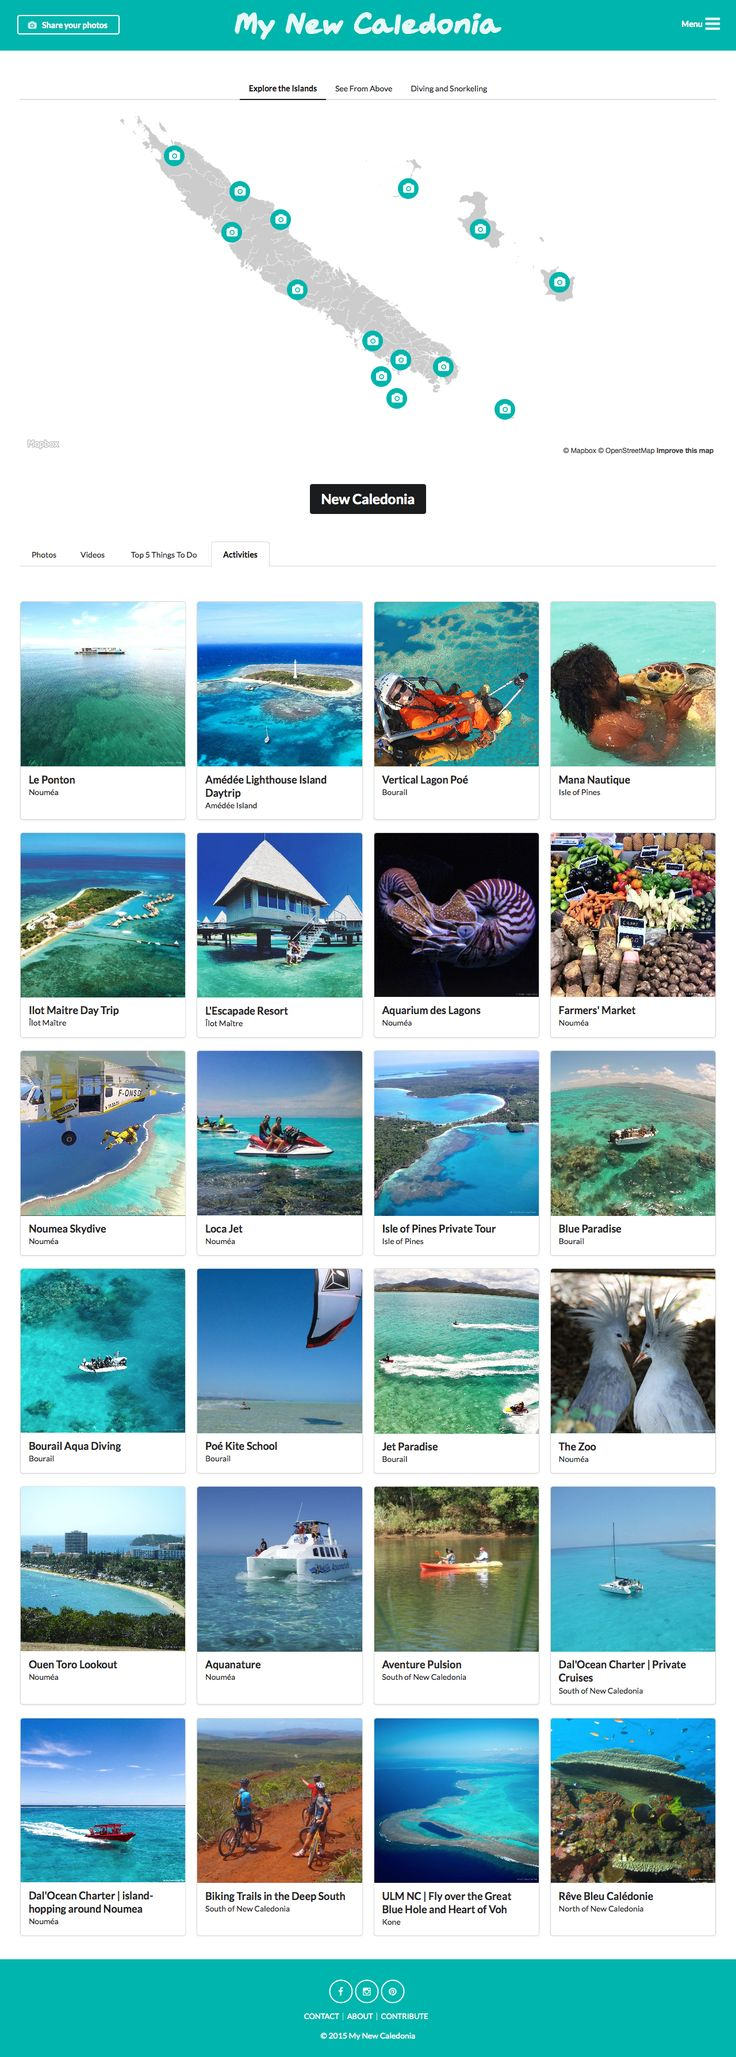 I share things to do, activities and must-see in New Caledonia on my website: mynewcaledonnia.co . See you there!